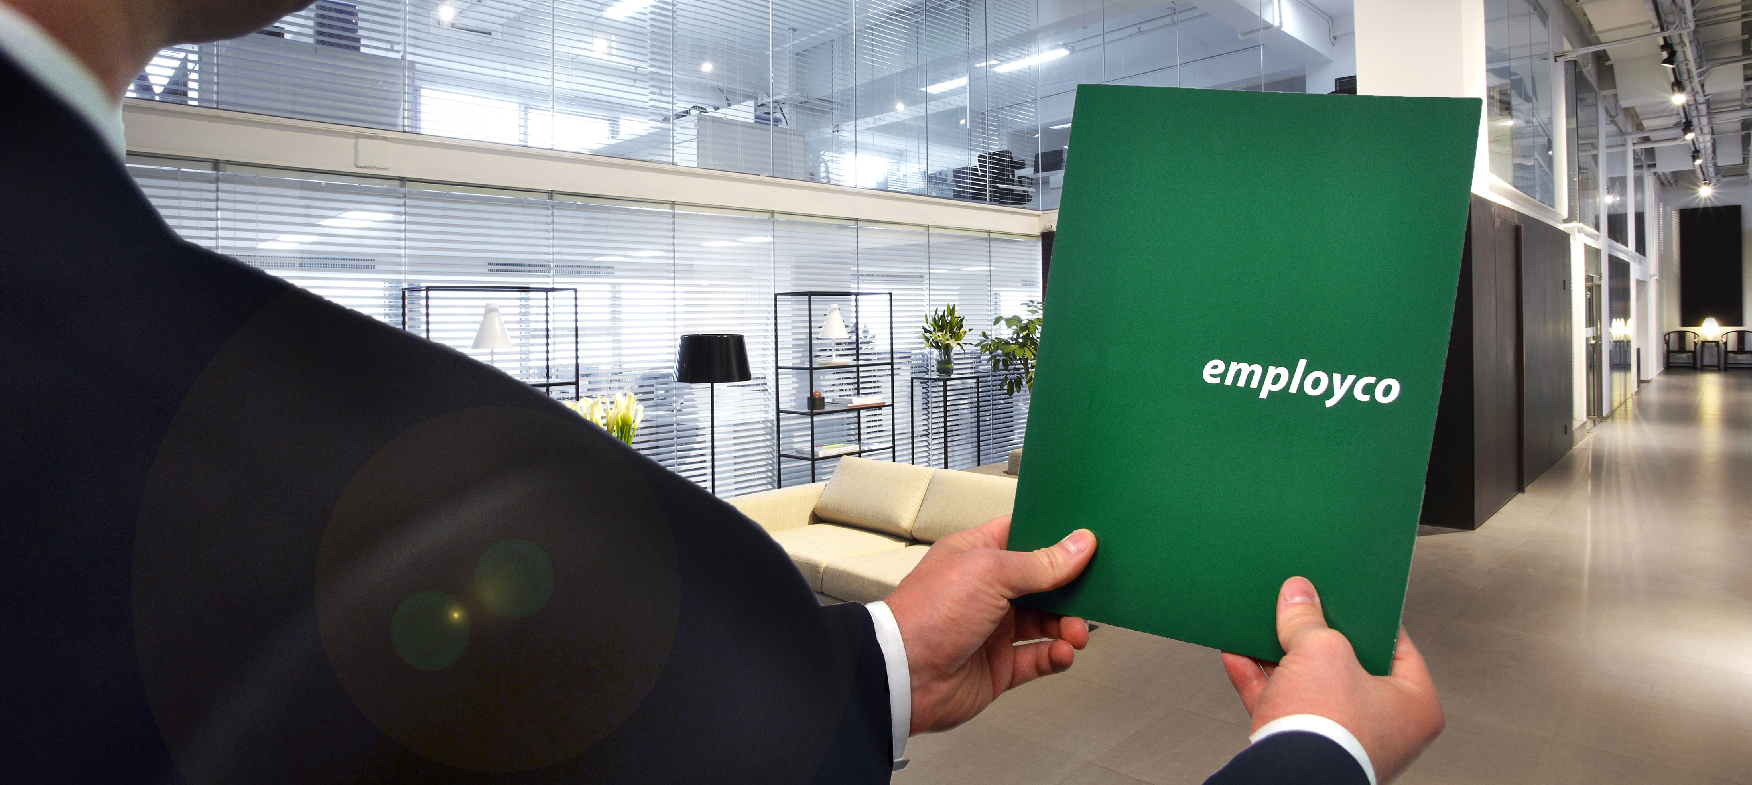 Shoulder shot of man in a suit holding out Employco folder.